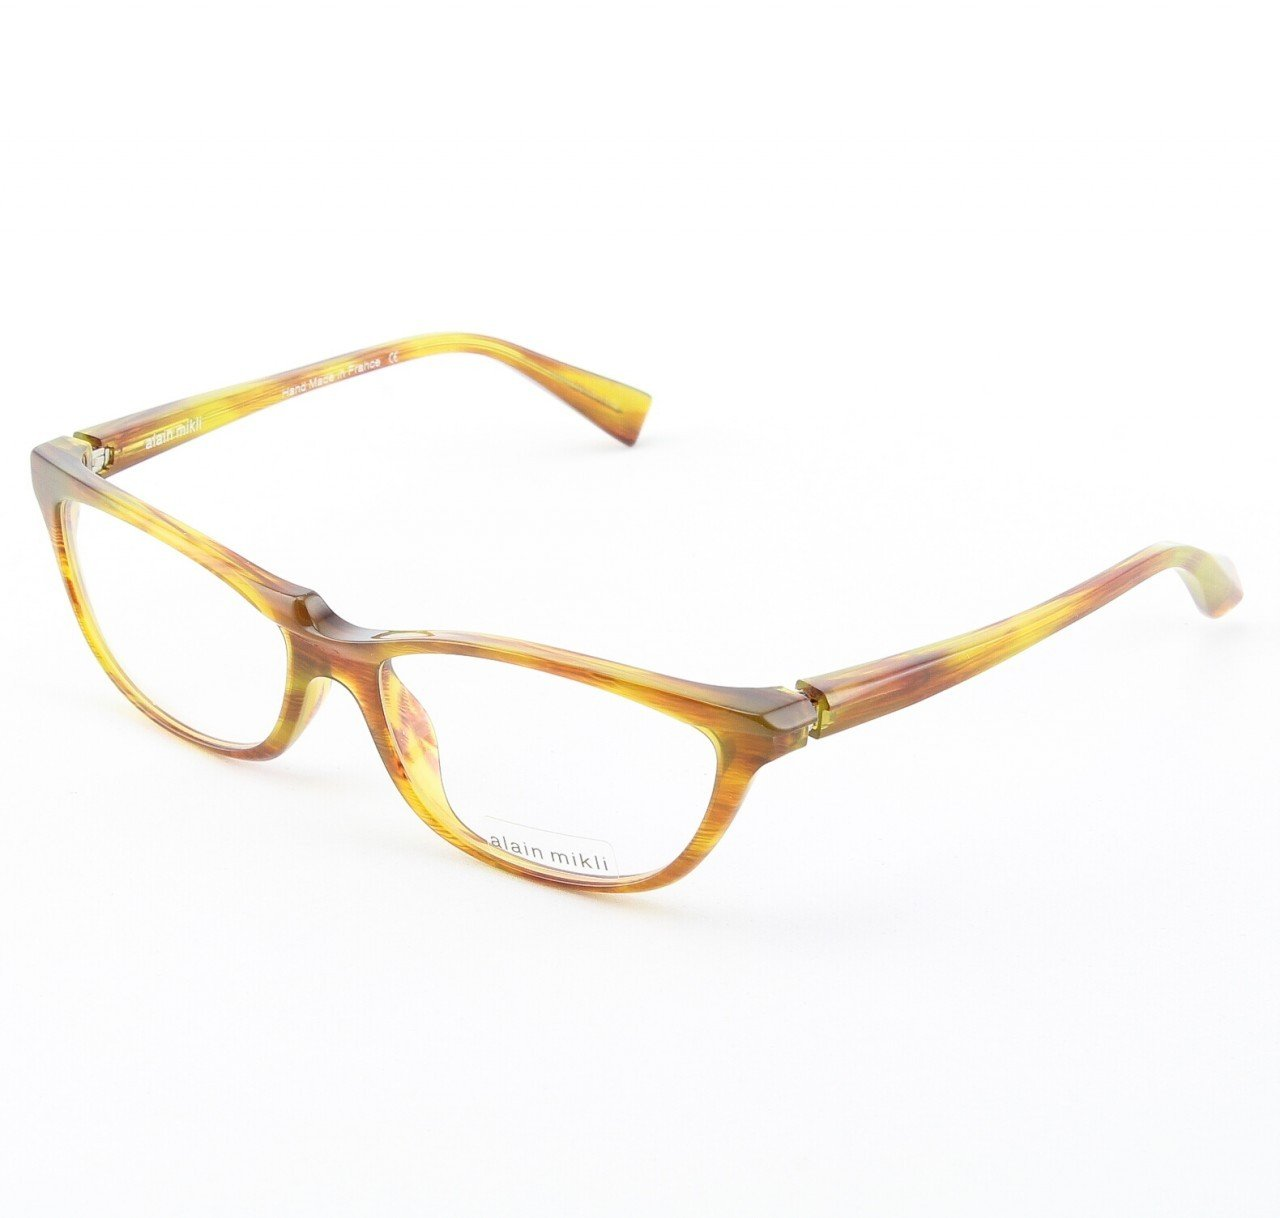 Alain Mikli Eyeglasses AL0882 Col. 1 Mottled Green and Brown